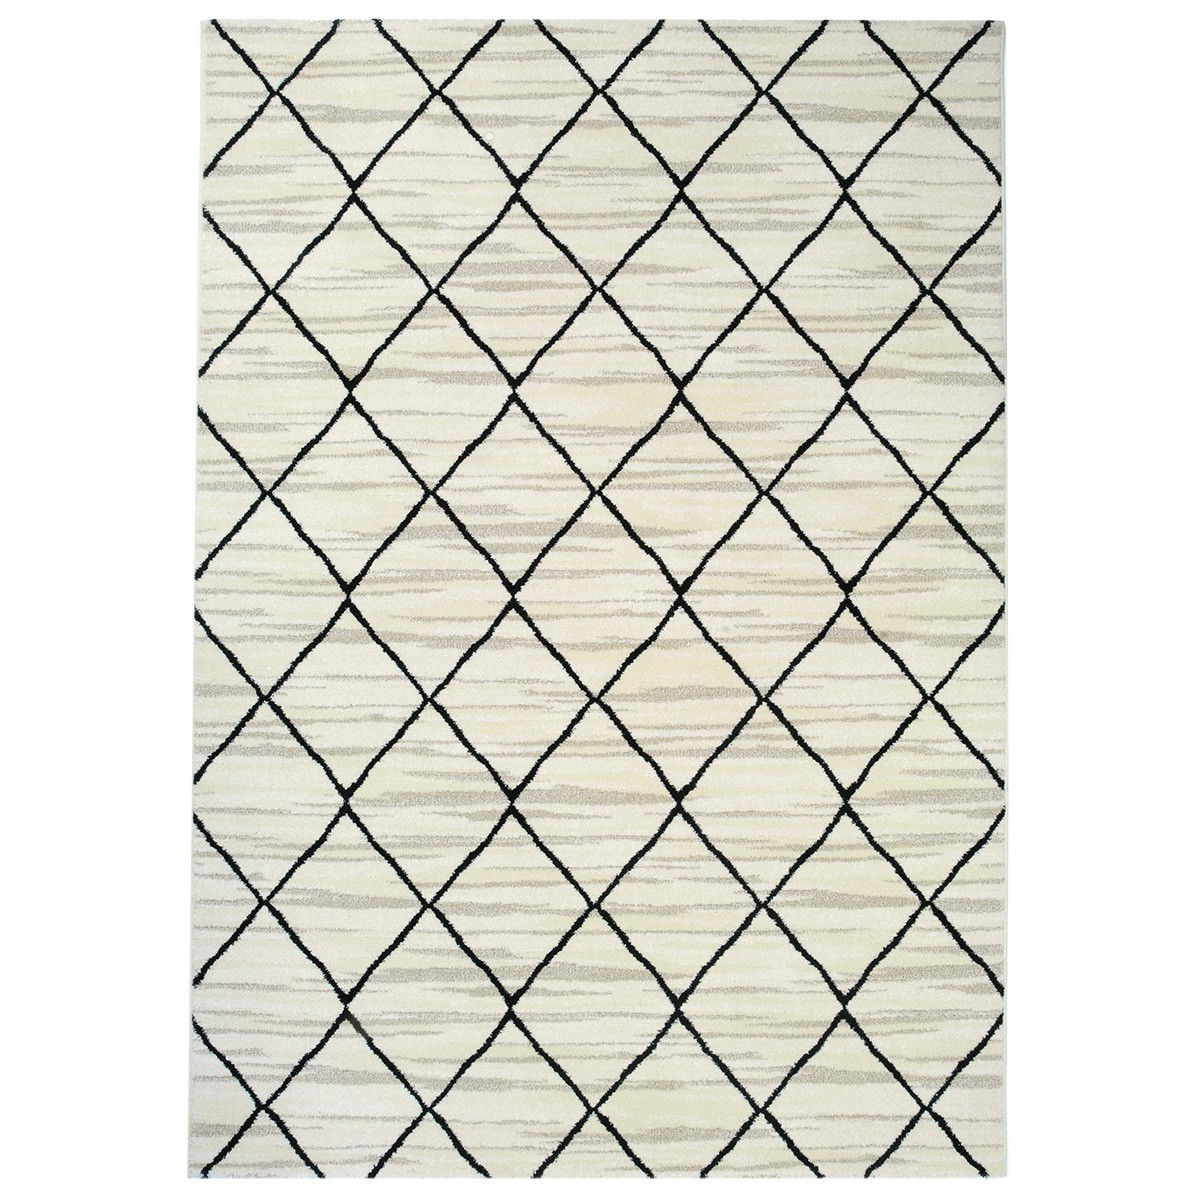 Tibet Lattice Modern Rug, 230x160cm, White/Black